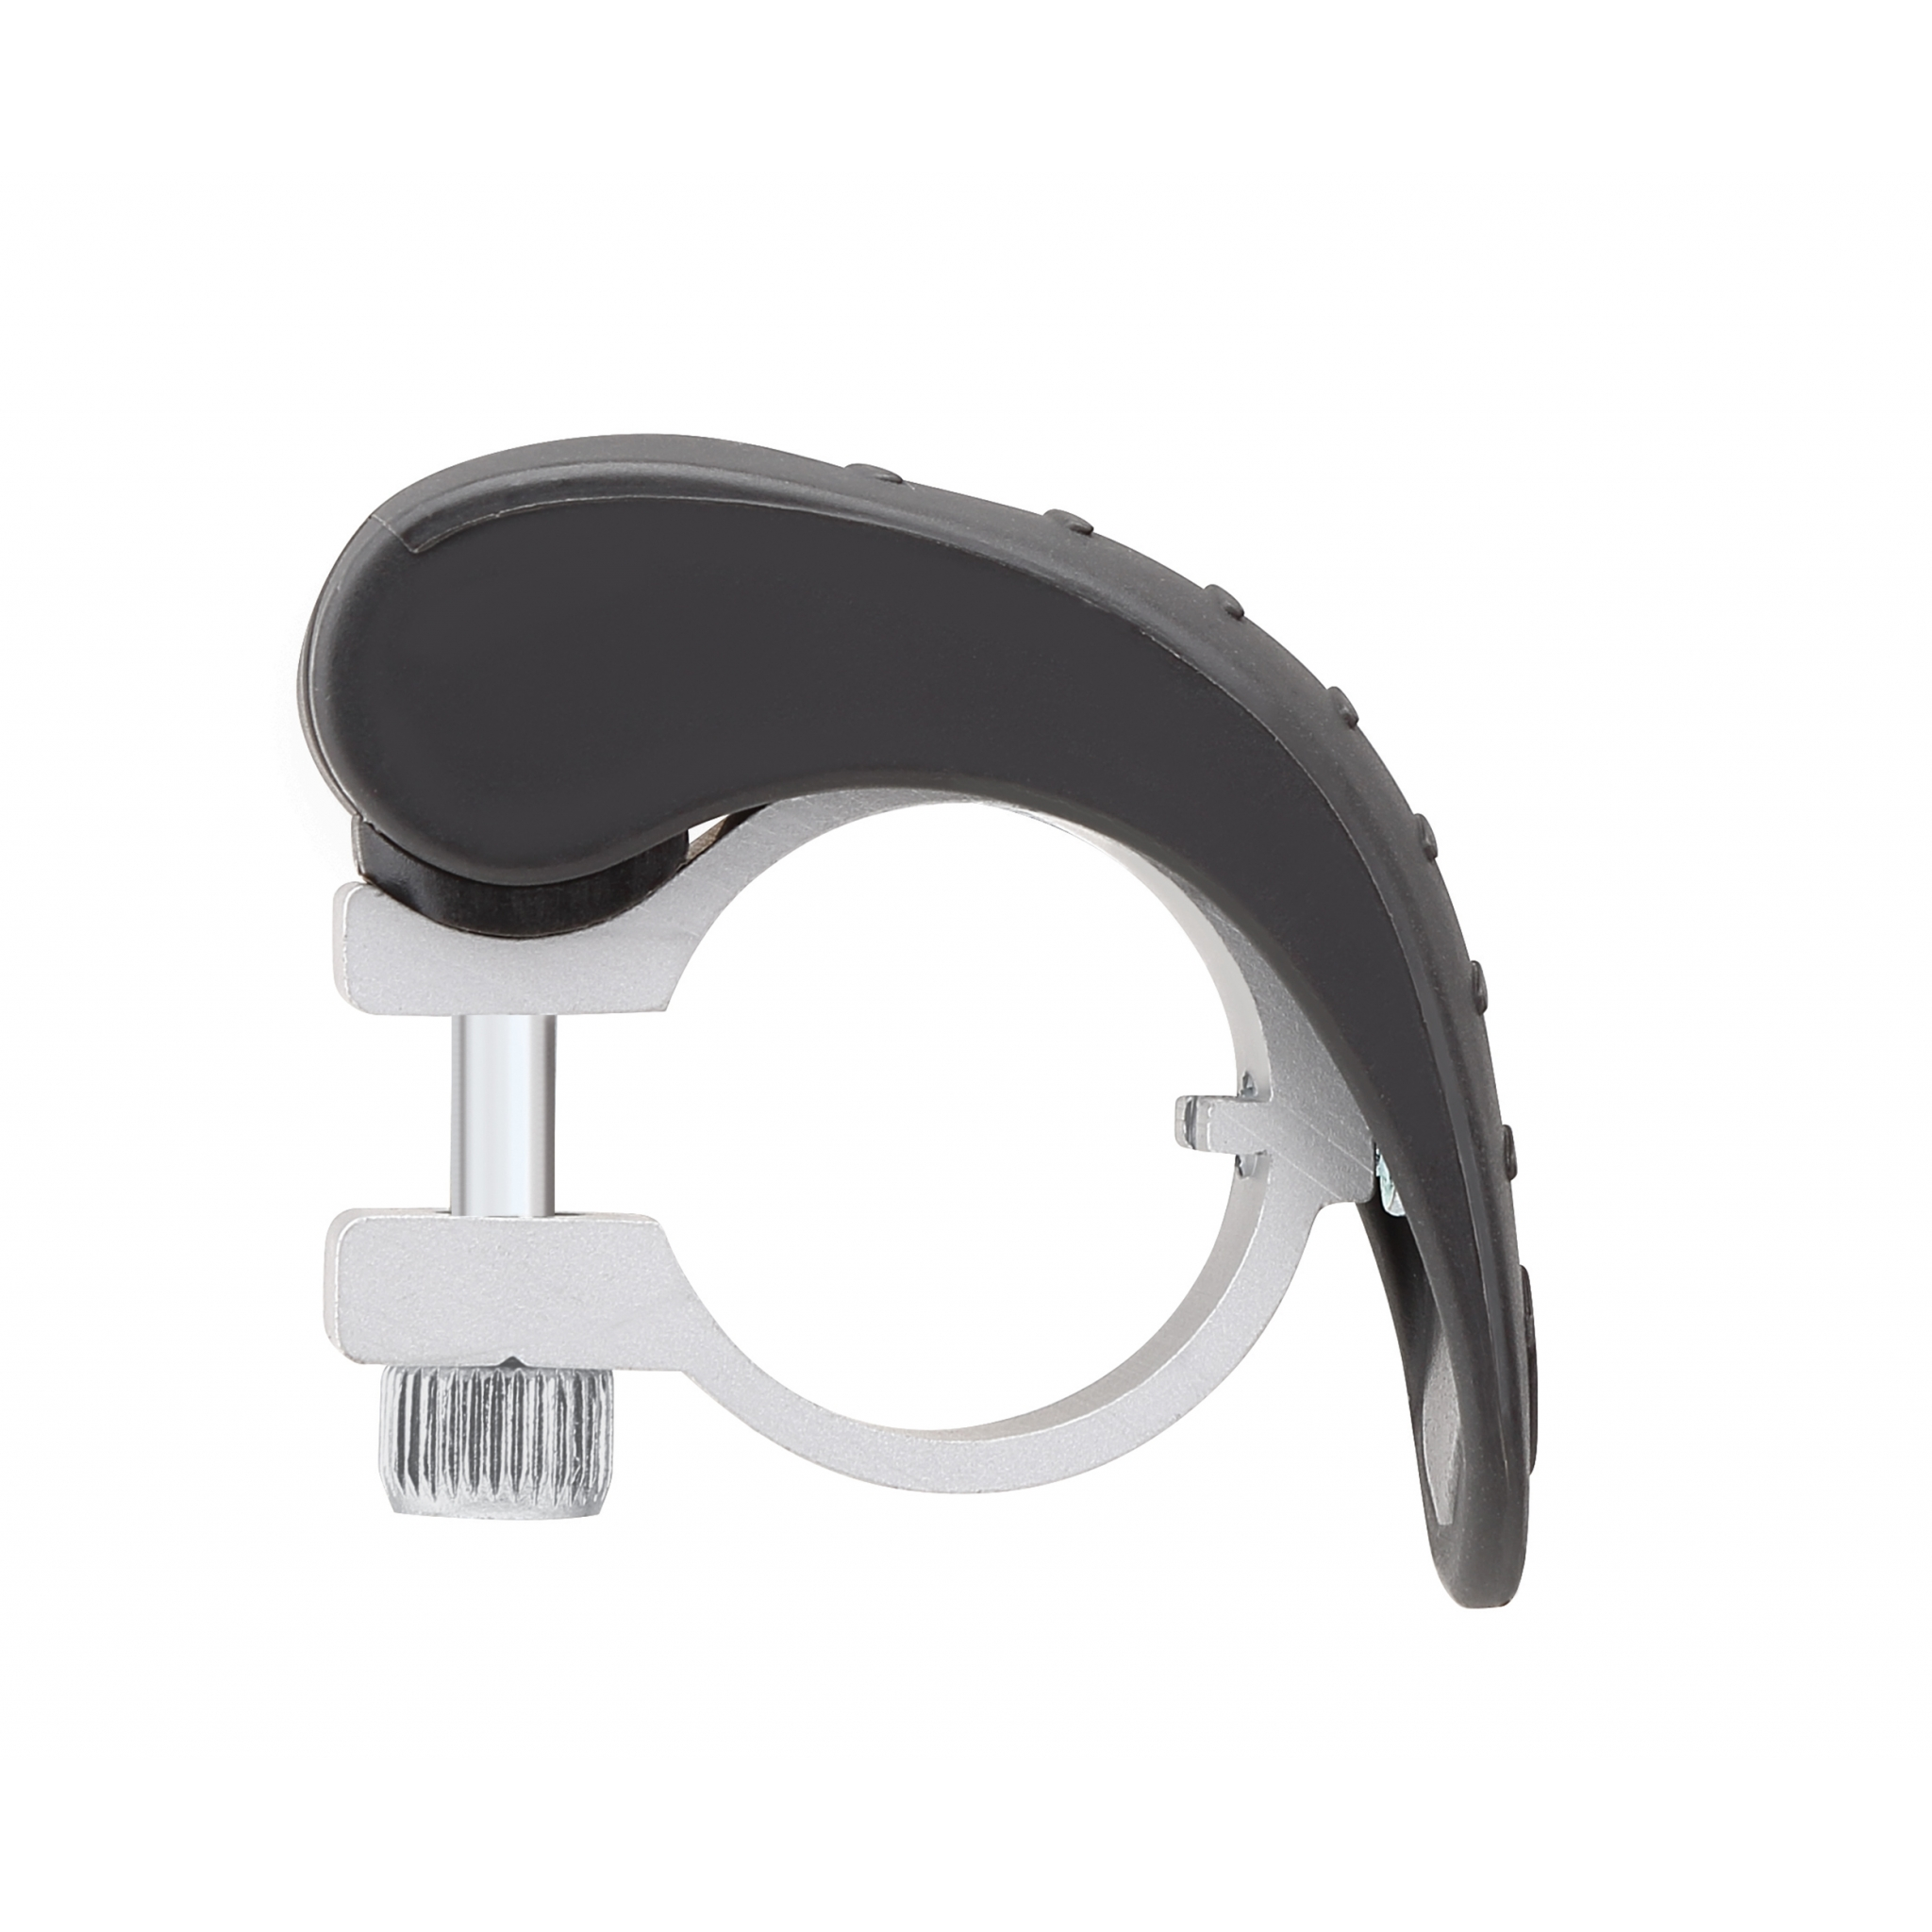 scooter t-bar clamp for Globber 3-wheel scooters and FLOW scooters